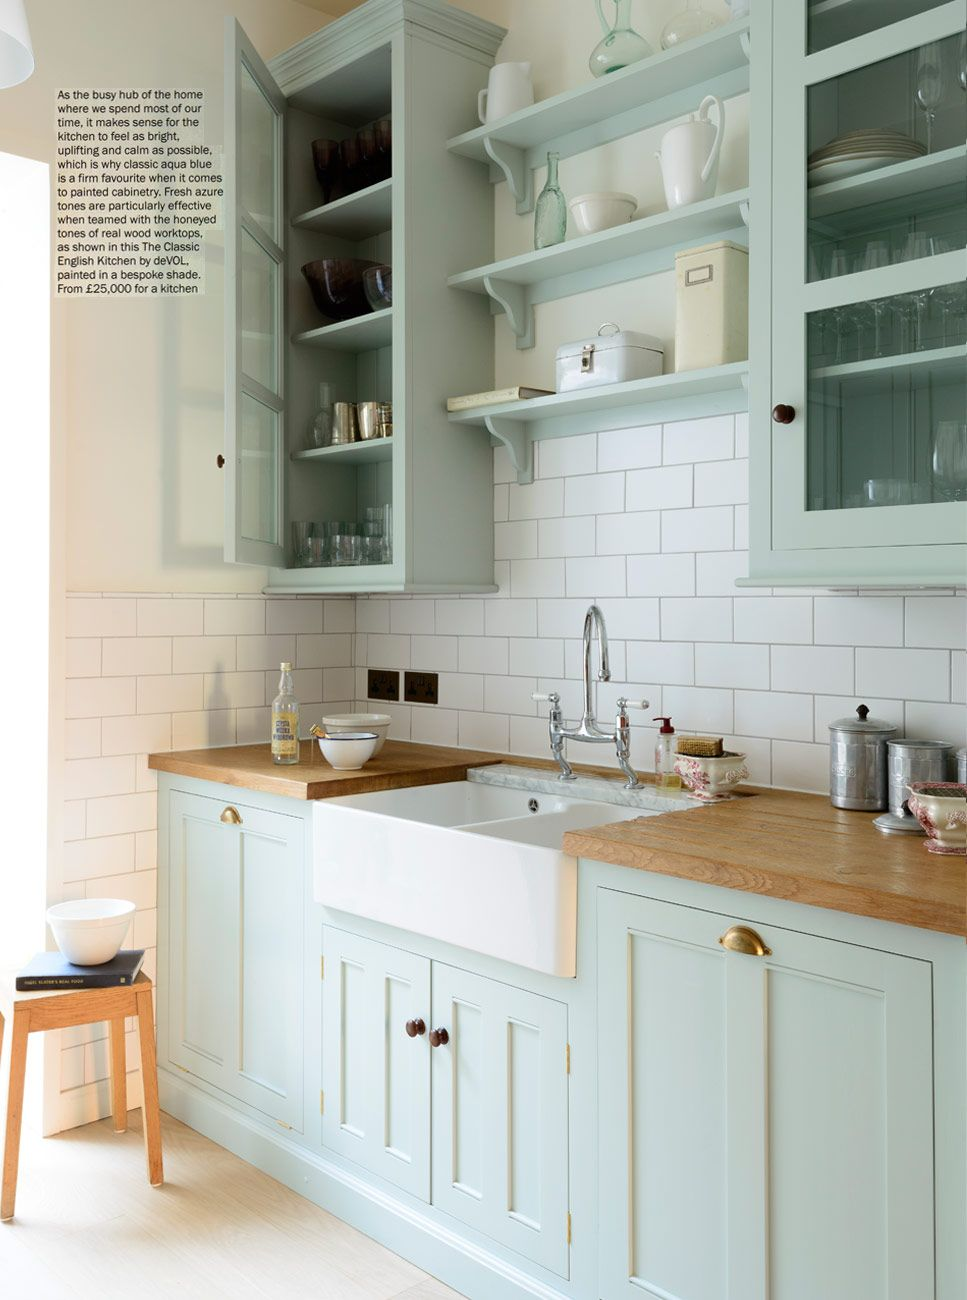 deVOL was thrilled to see the Pimlico Classic Kitchen in Period ...